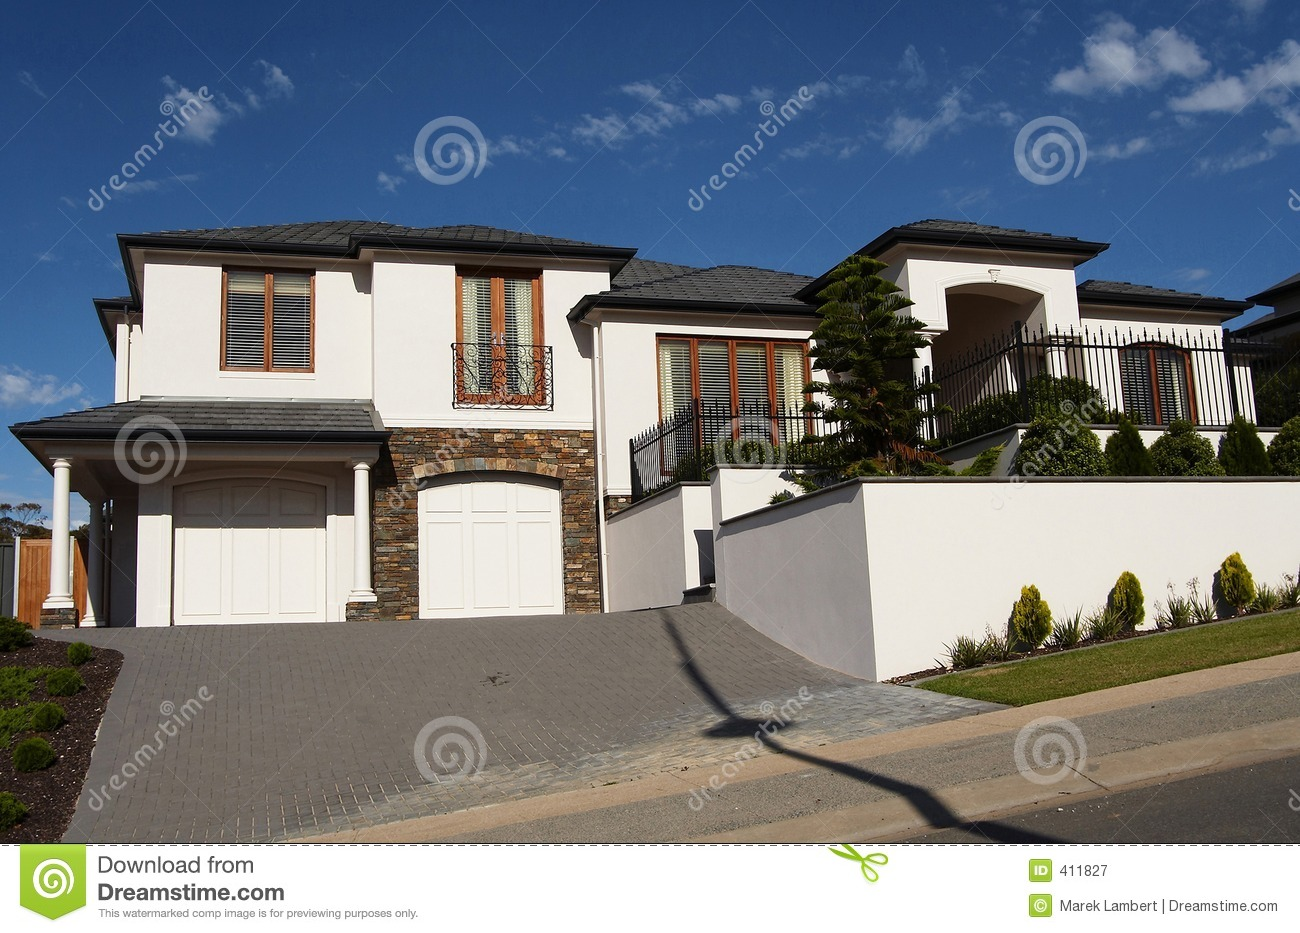 modern two storey house with a balcony royalty free stock image